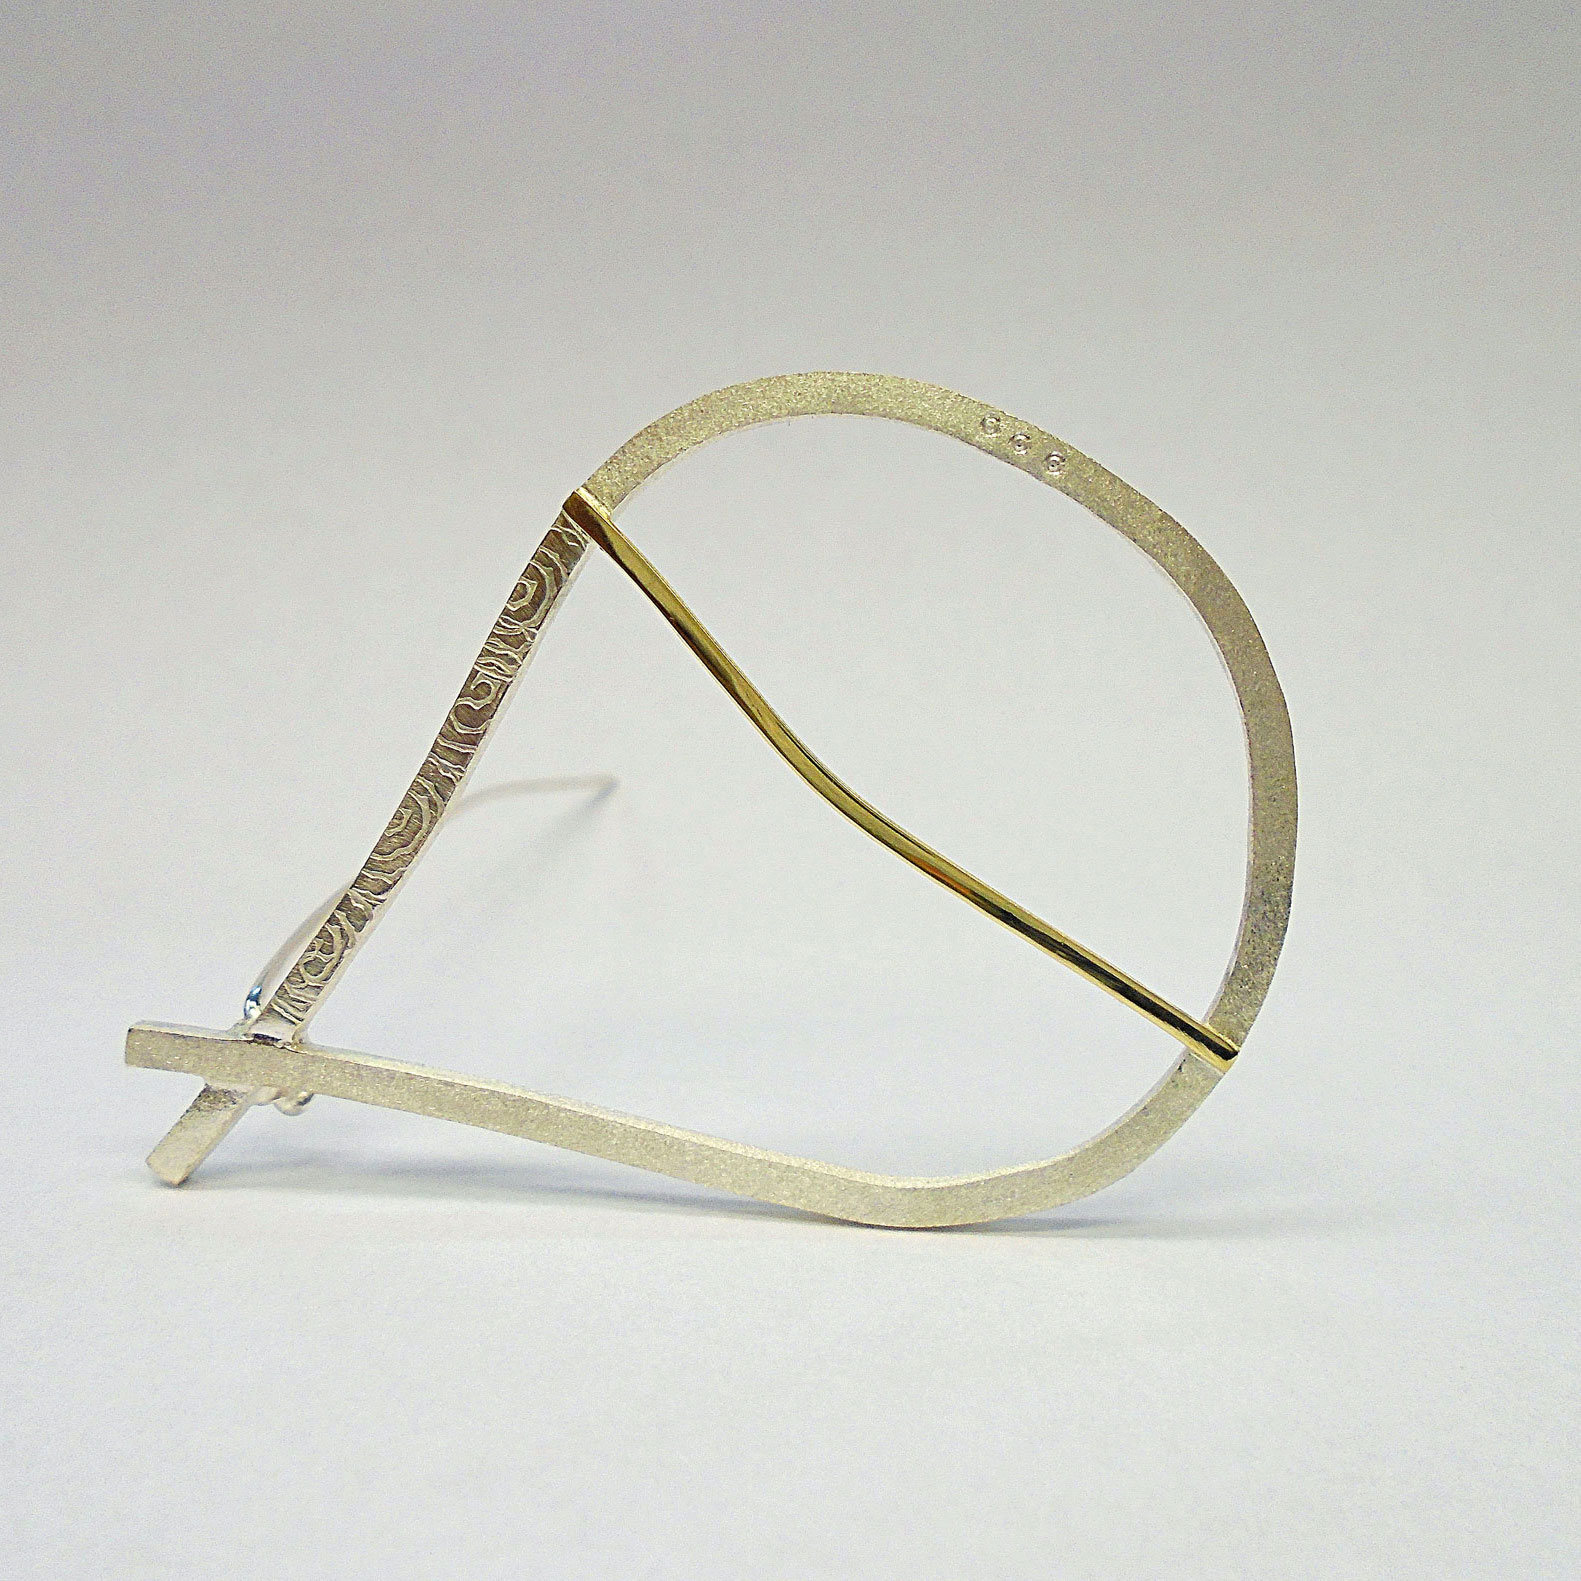 Across the Line 3 Brooch